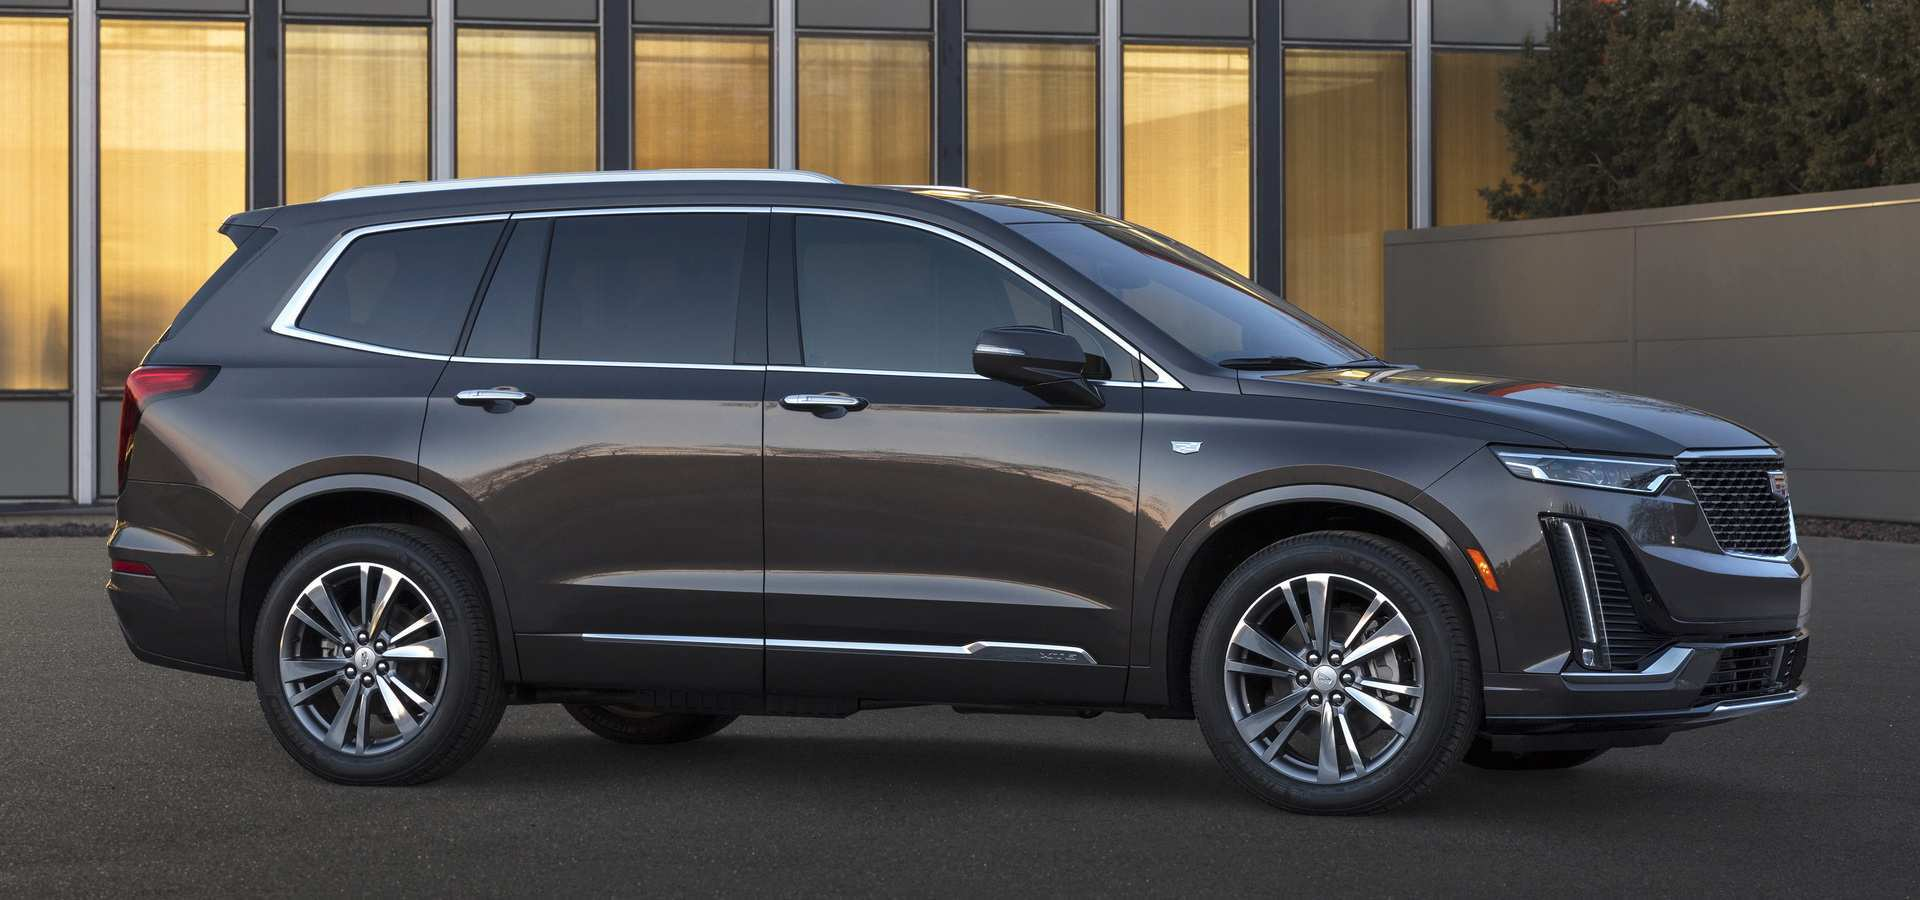 24 All New 2020 Lincoln Aviator Vs Cadillac Xt6 Concept by 2020 Lincoln Aviator Vs Cadillac Xt6